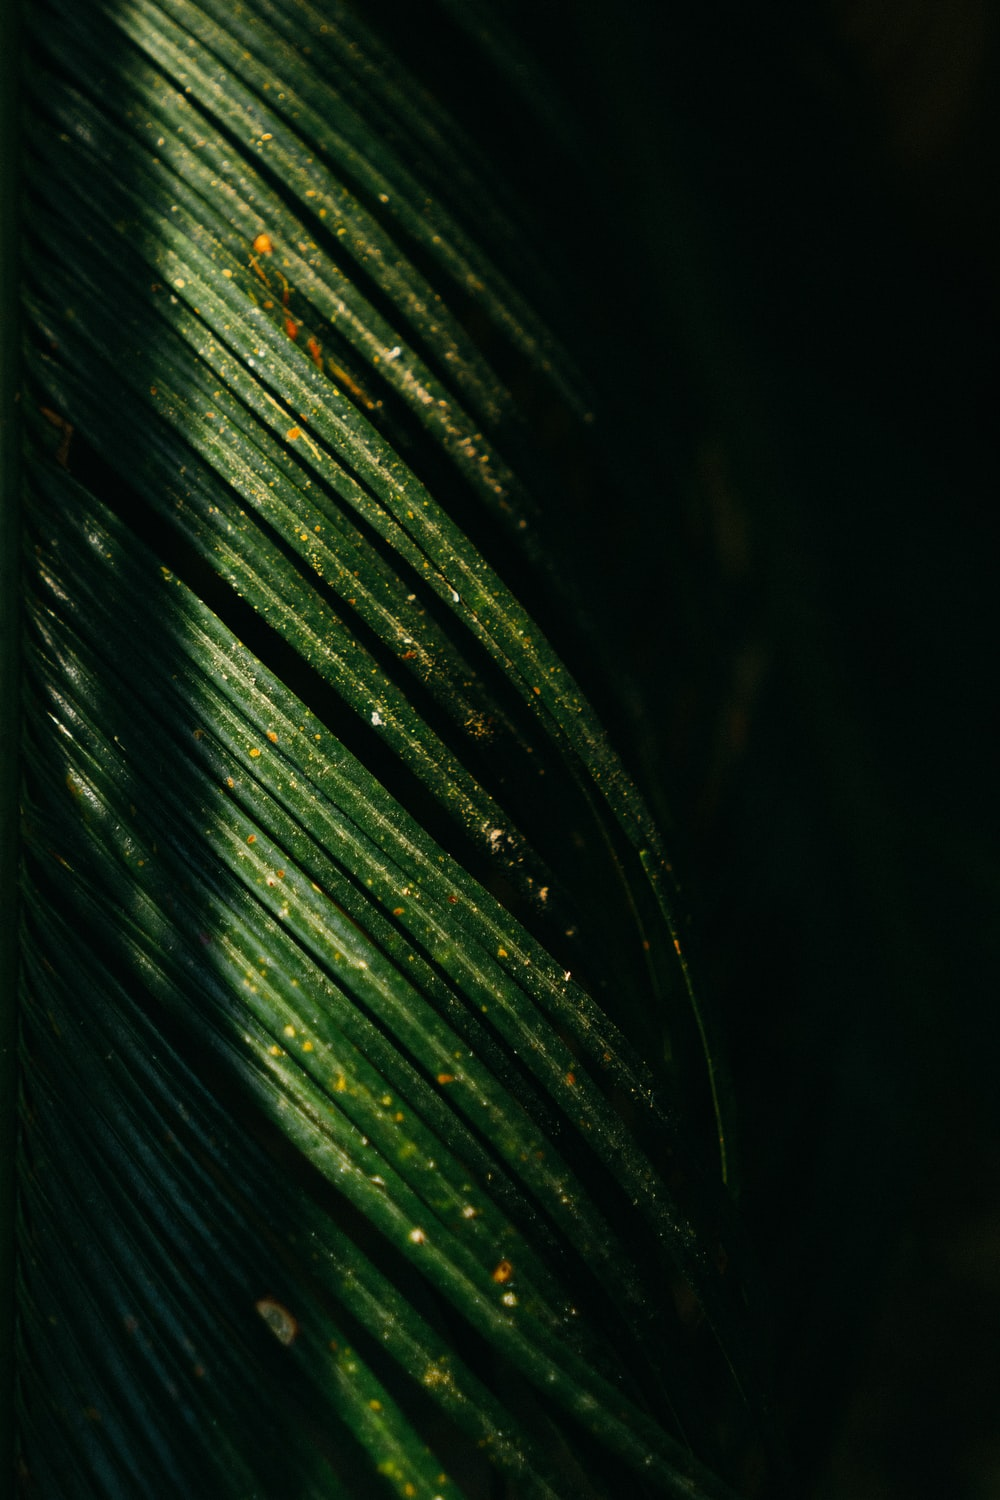 500 Palm Leaf Pictures Hd Download Free Images On Unsplash